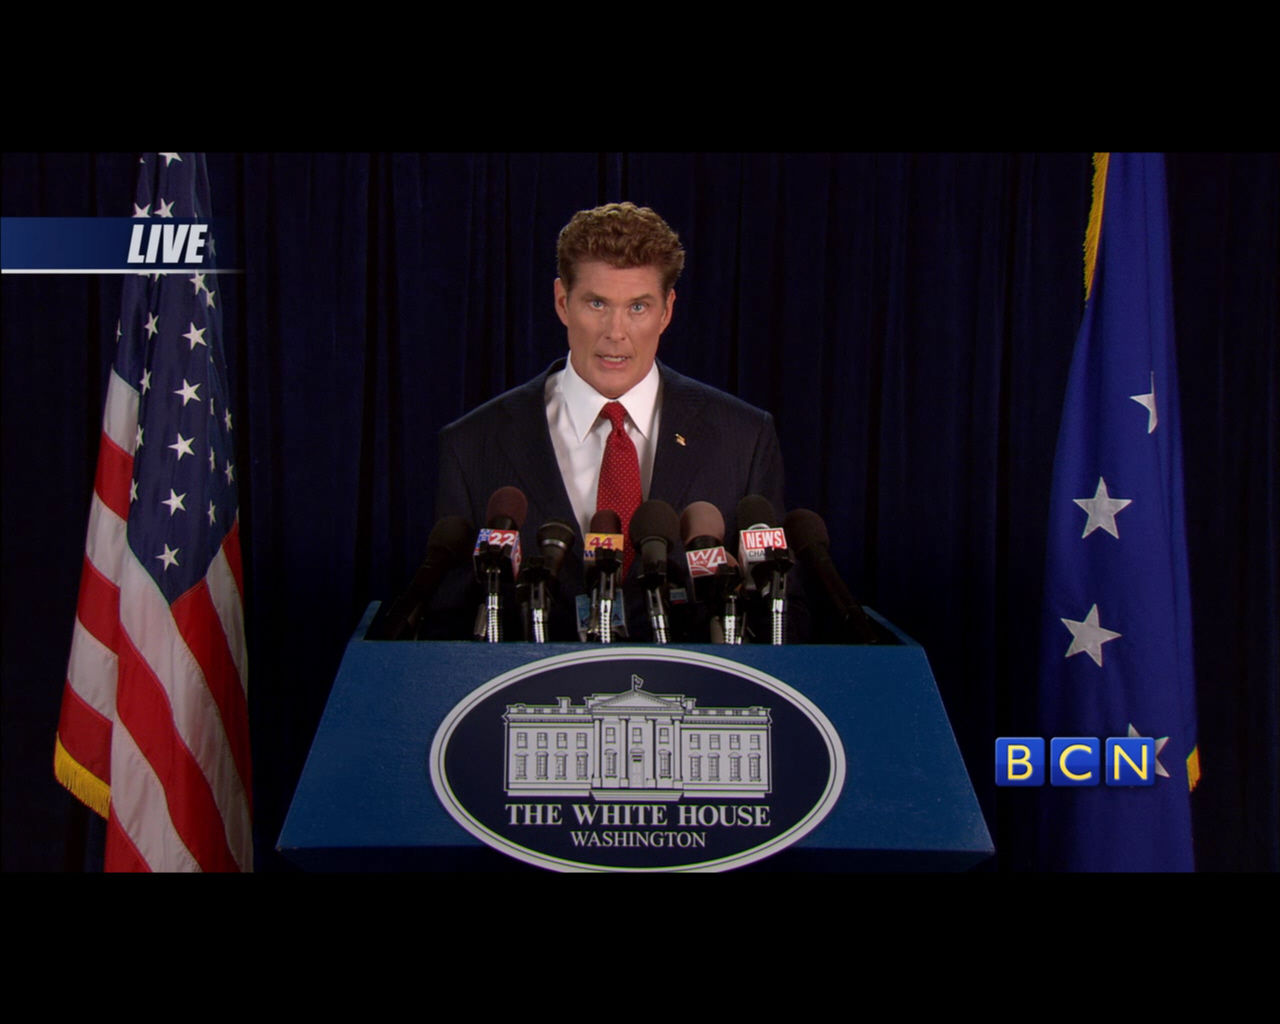 Command & Conquer: Red Alert 3 Windows How did David Hasselhoff get into the White House?